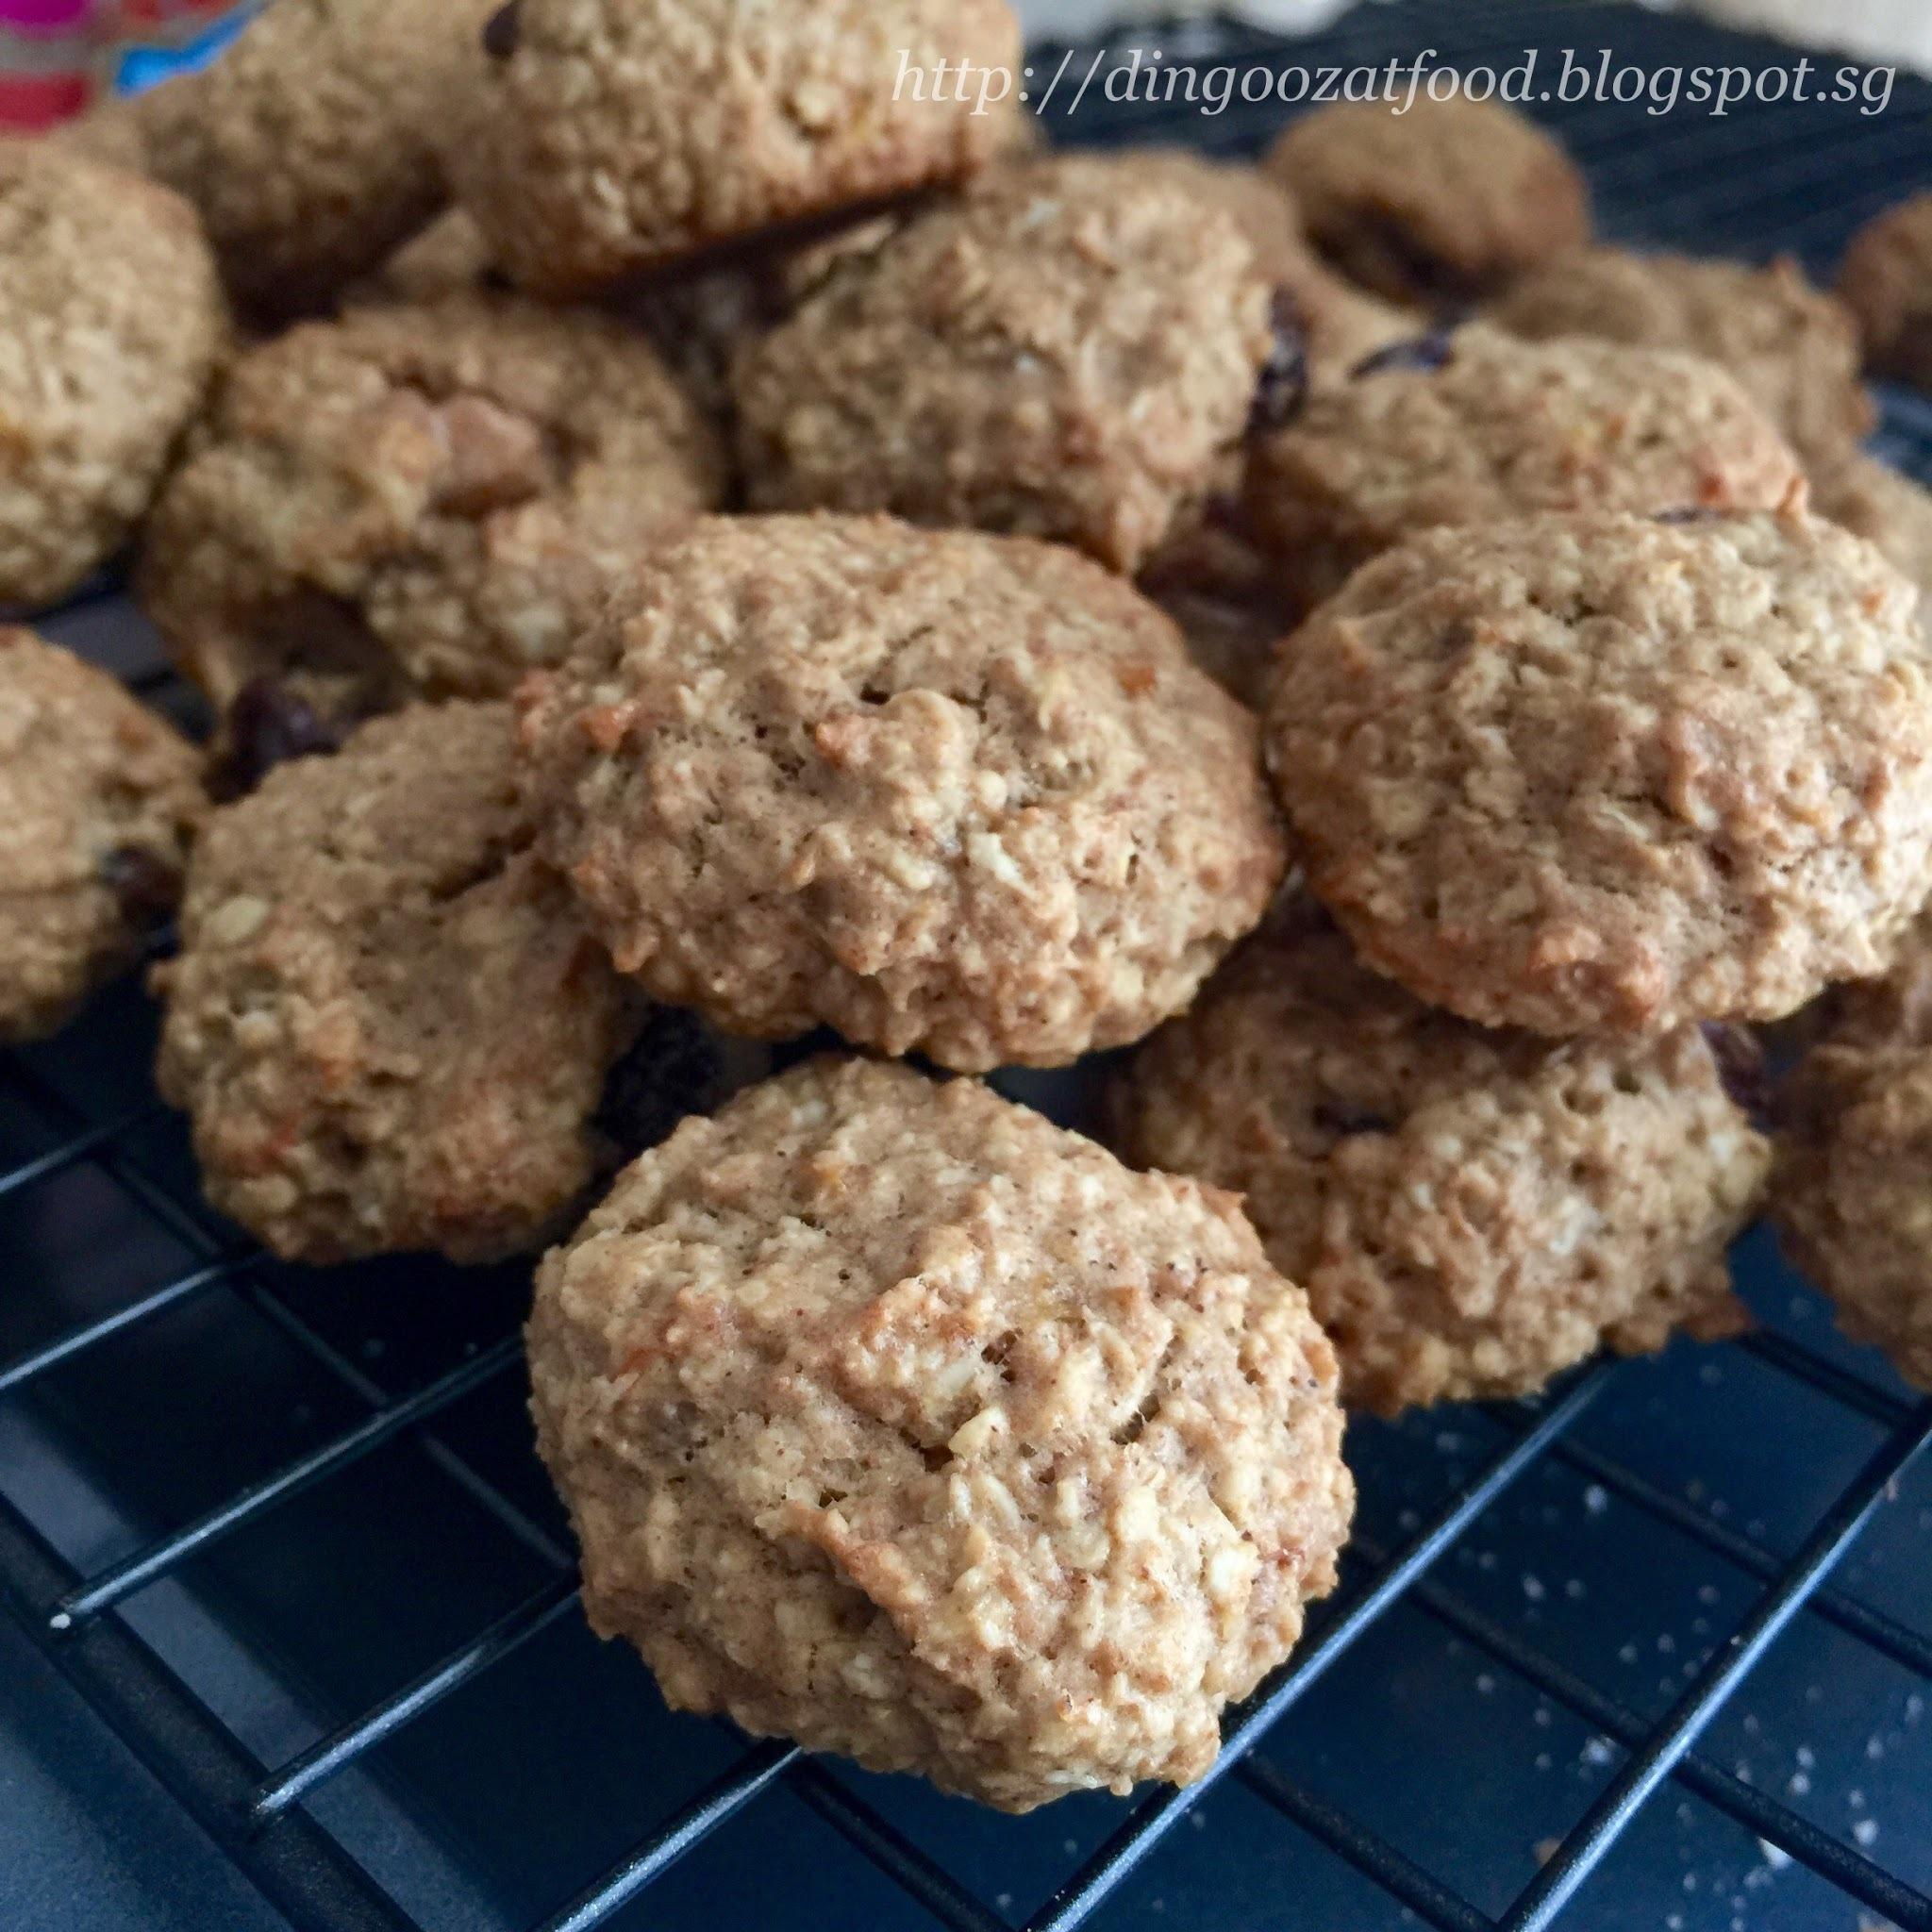 Banana Oatmeal Cookies (Whole Wheat) 香蕉燕麦曲奇饼干